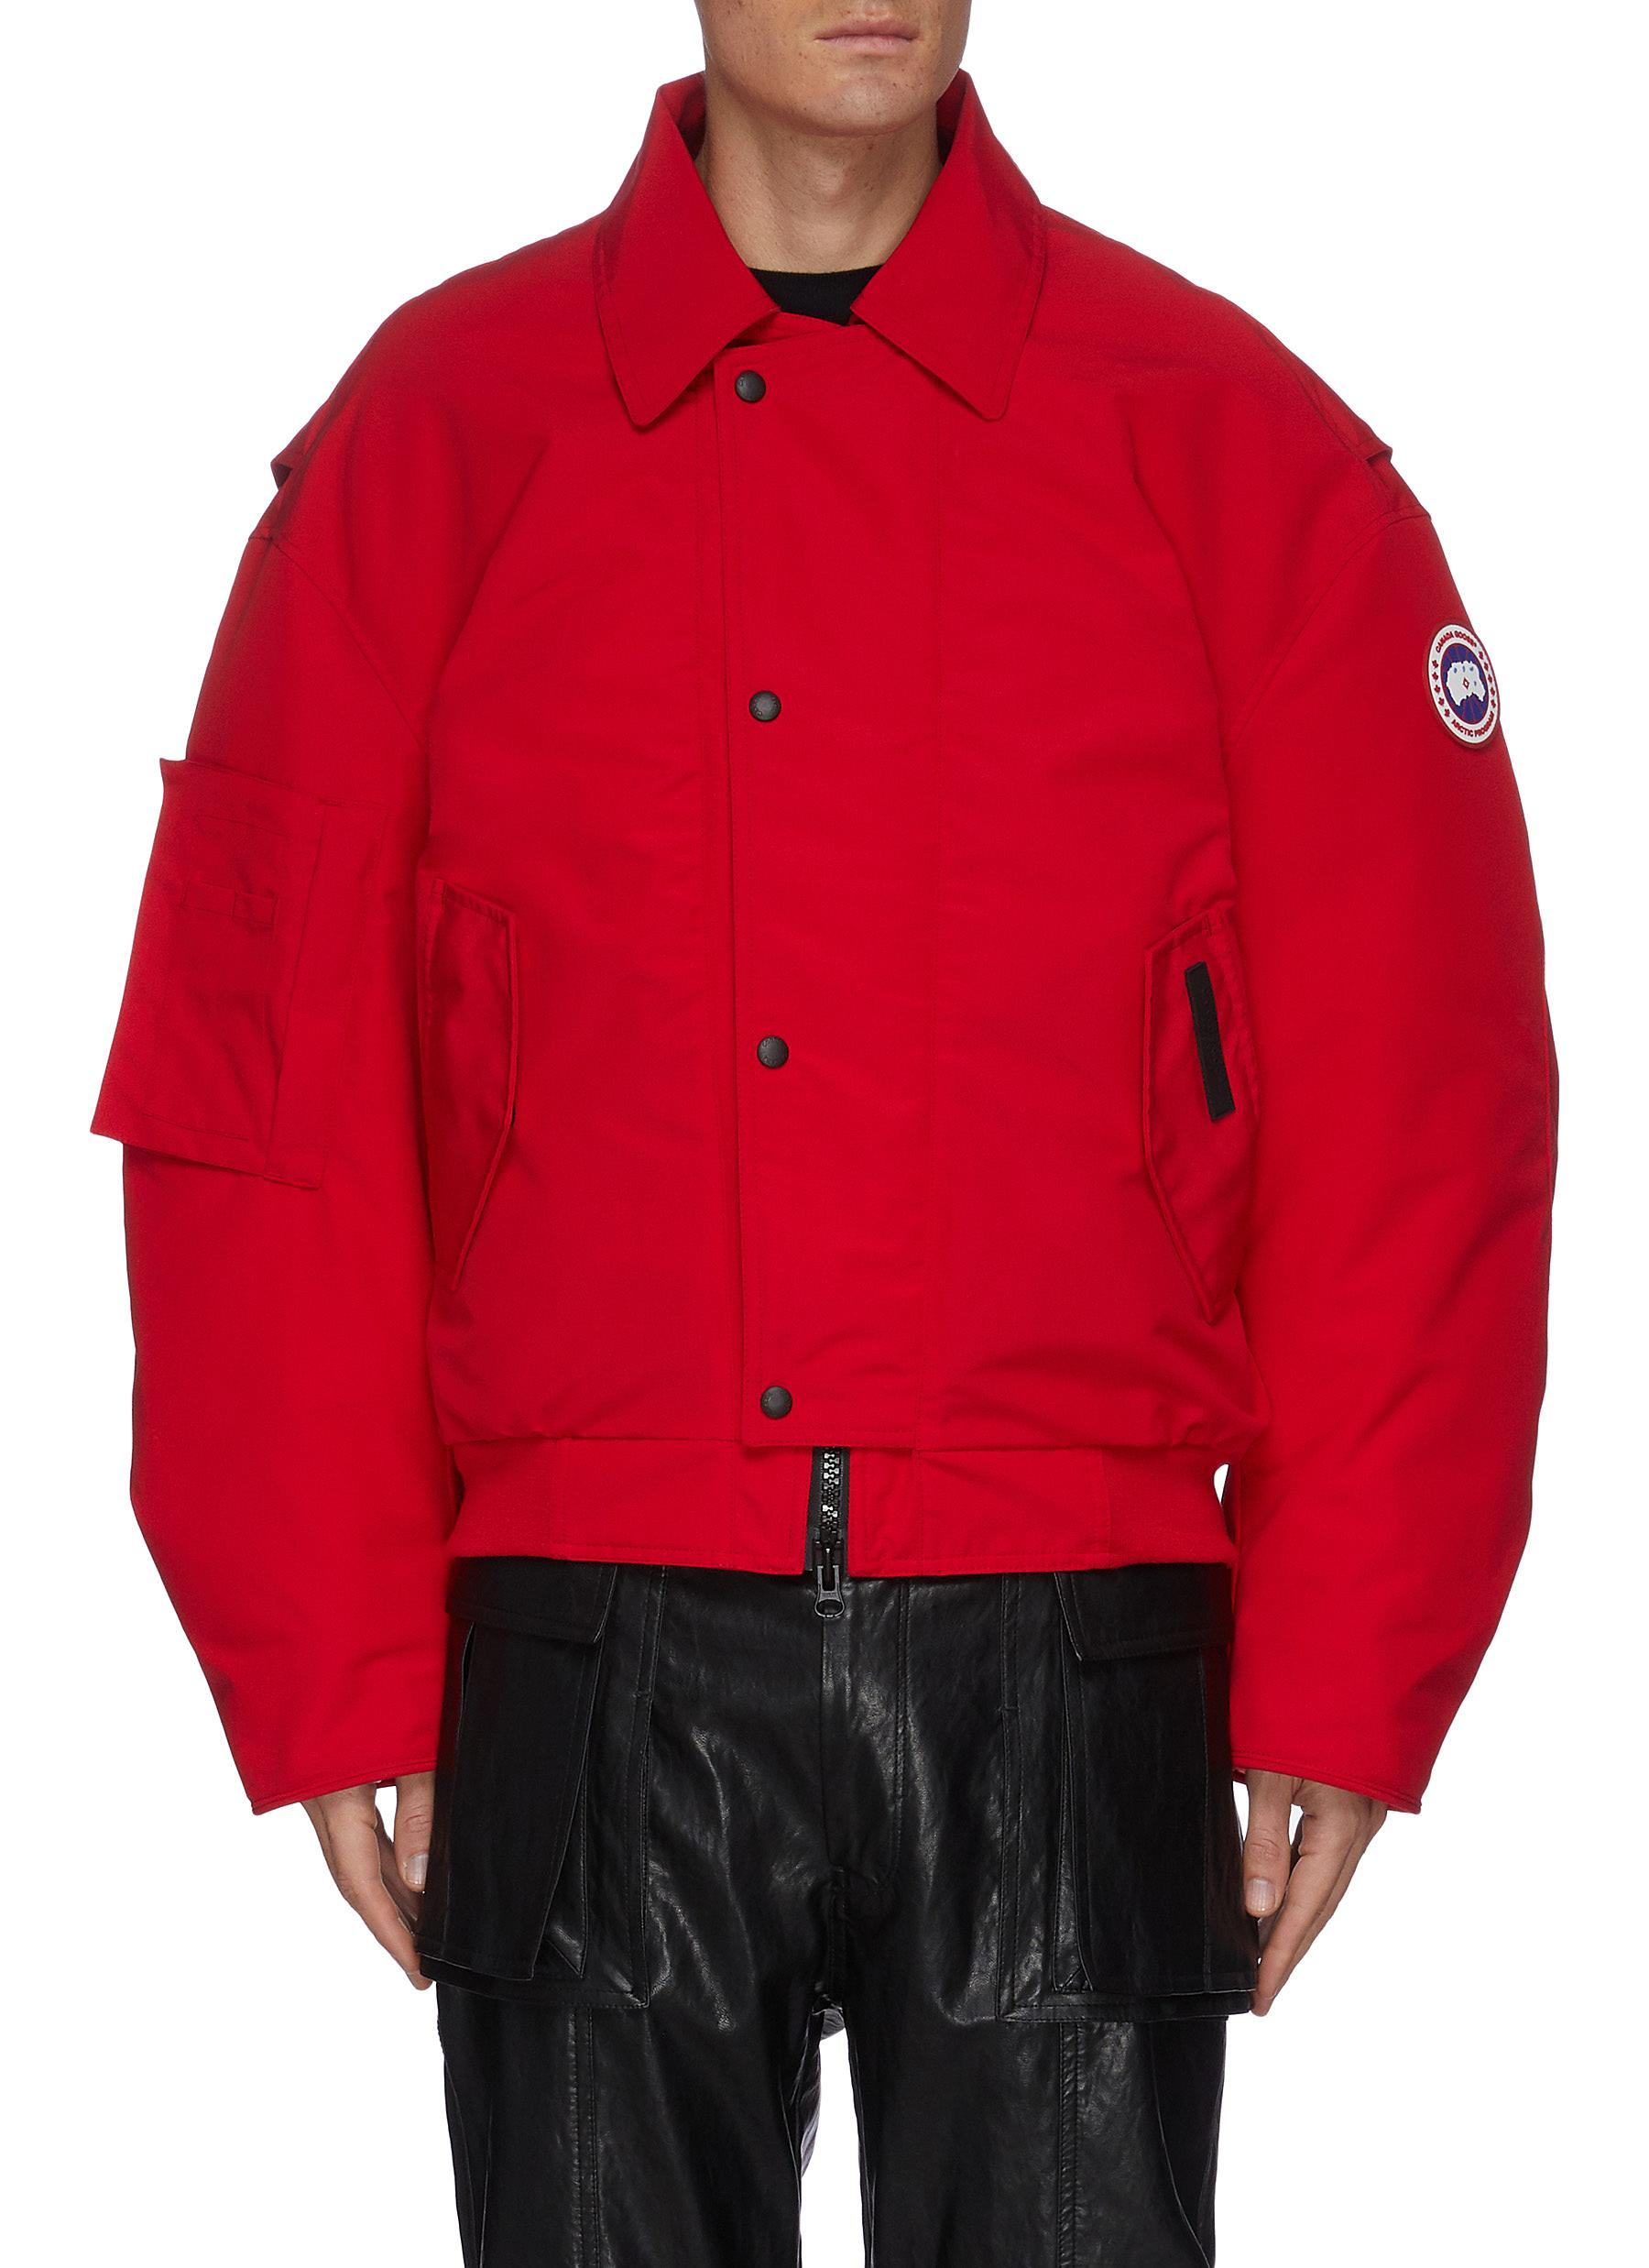 Canada Goose X ANGEL CHEN 'ARXAN' PUFFER BOMBER JACKET